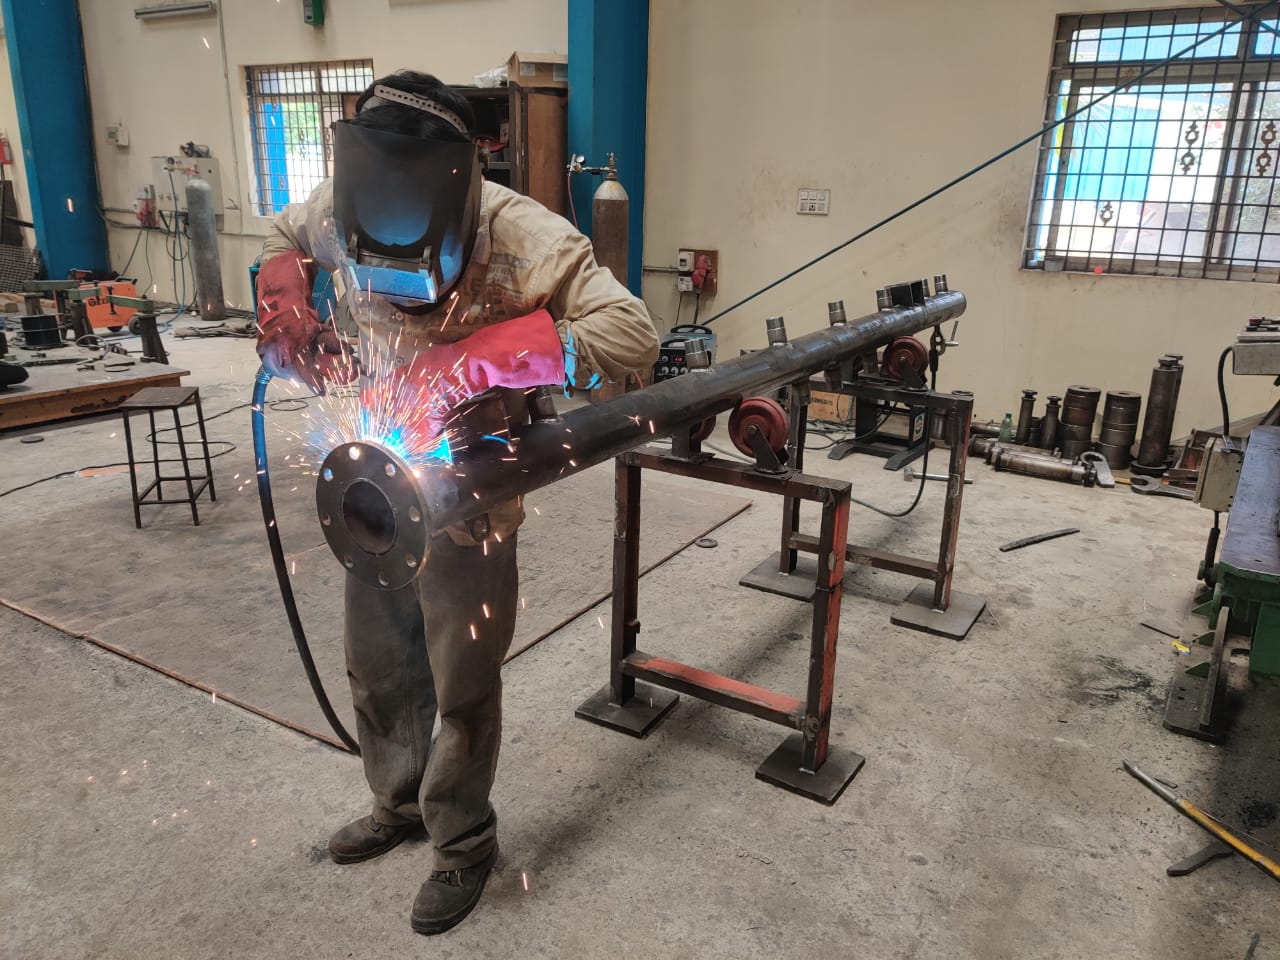 FABRICATION SHOP